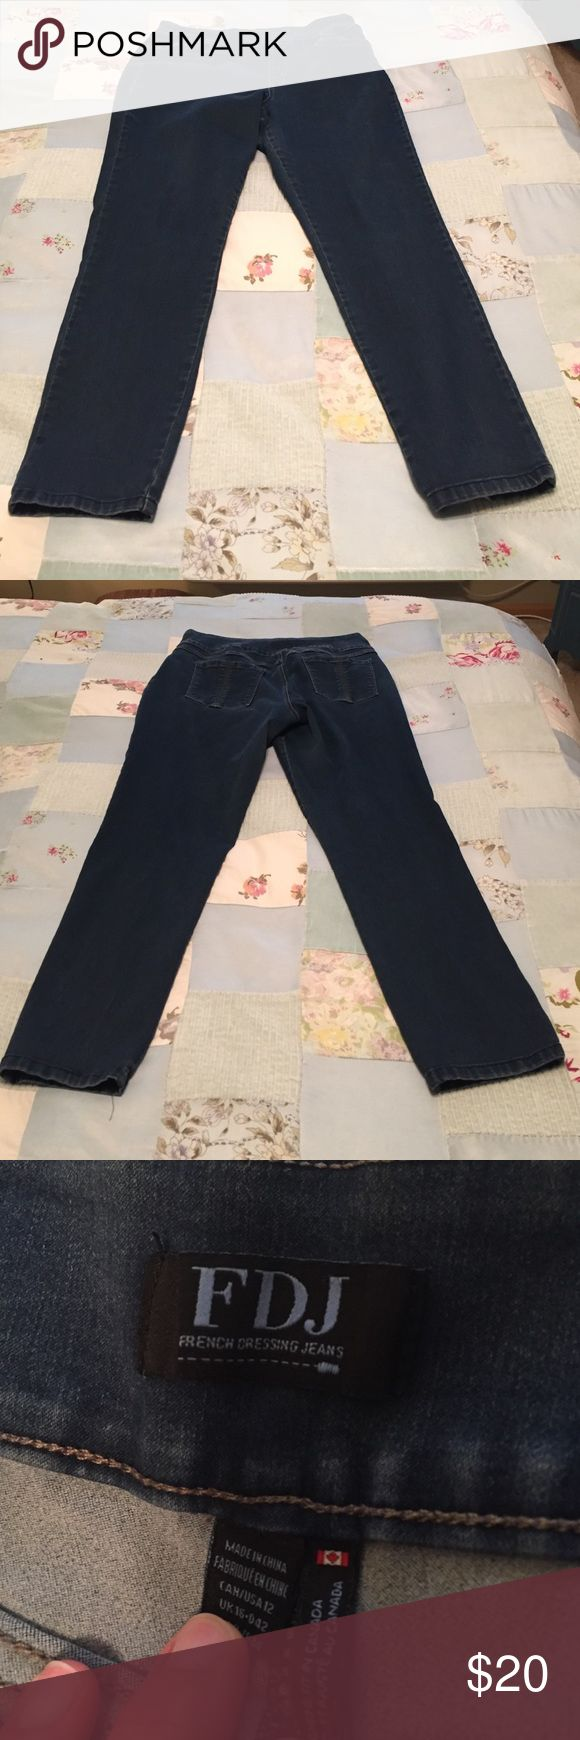 French Dressing Jeans skinny jeans Canadian brand French Dressing Jeans are cute and crazy comfortable.  Perfect for running errands or spending lazy days at home! French Dressing Jeans Jeans Skinny